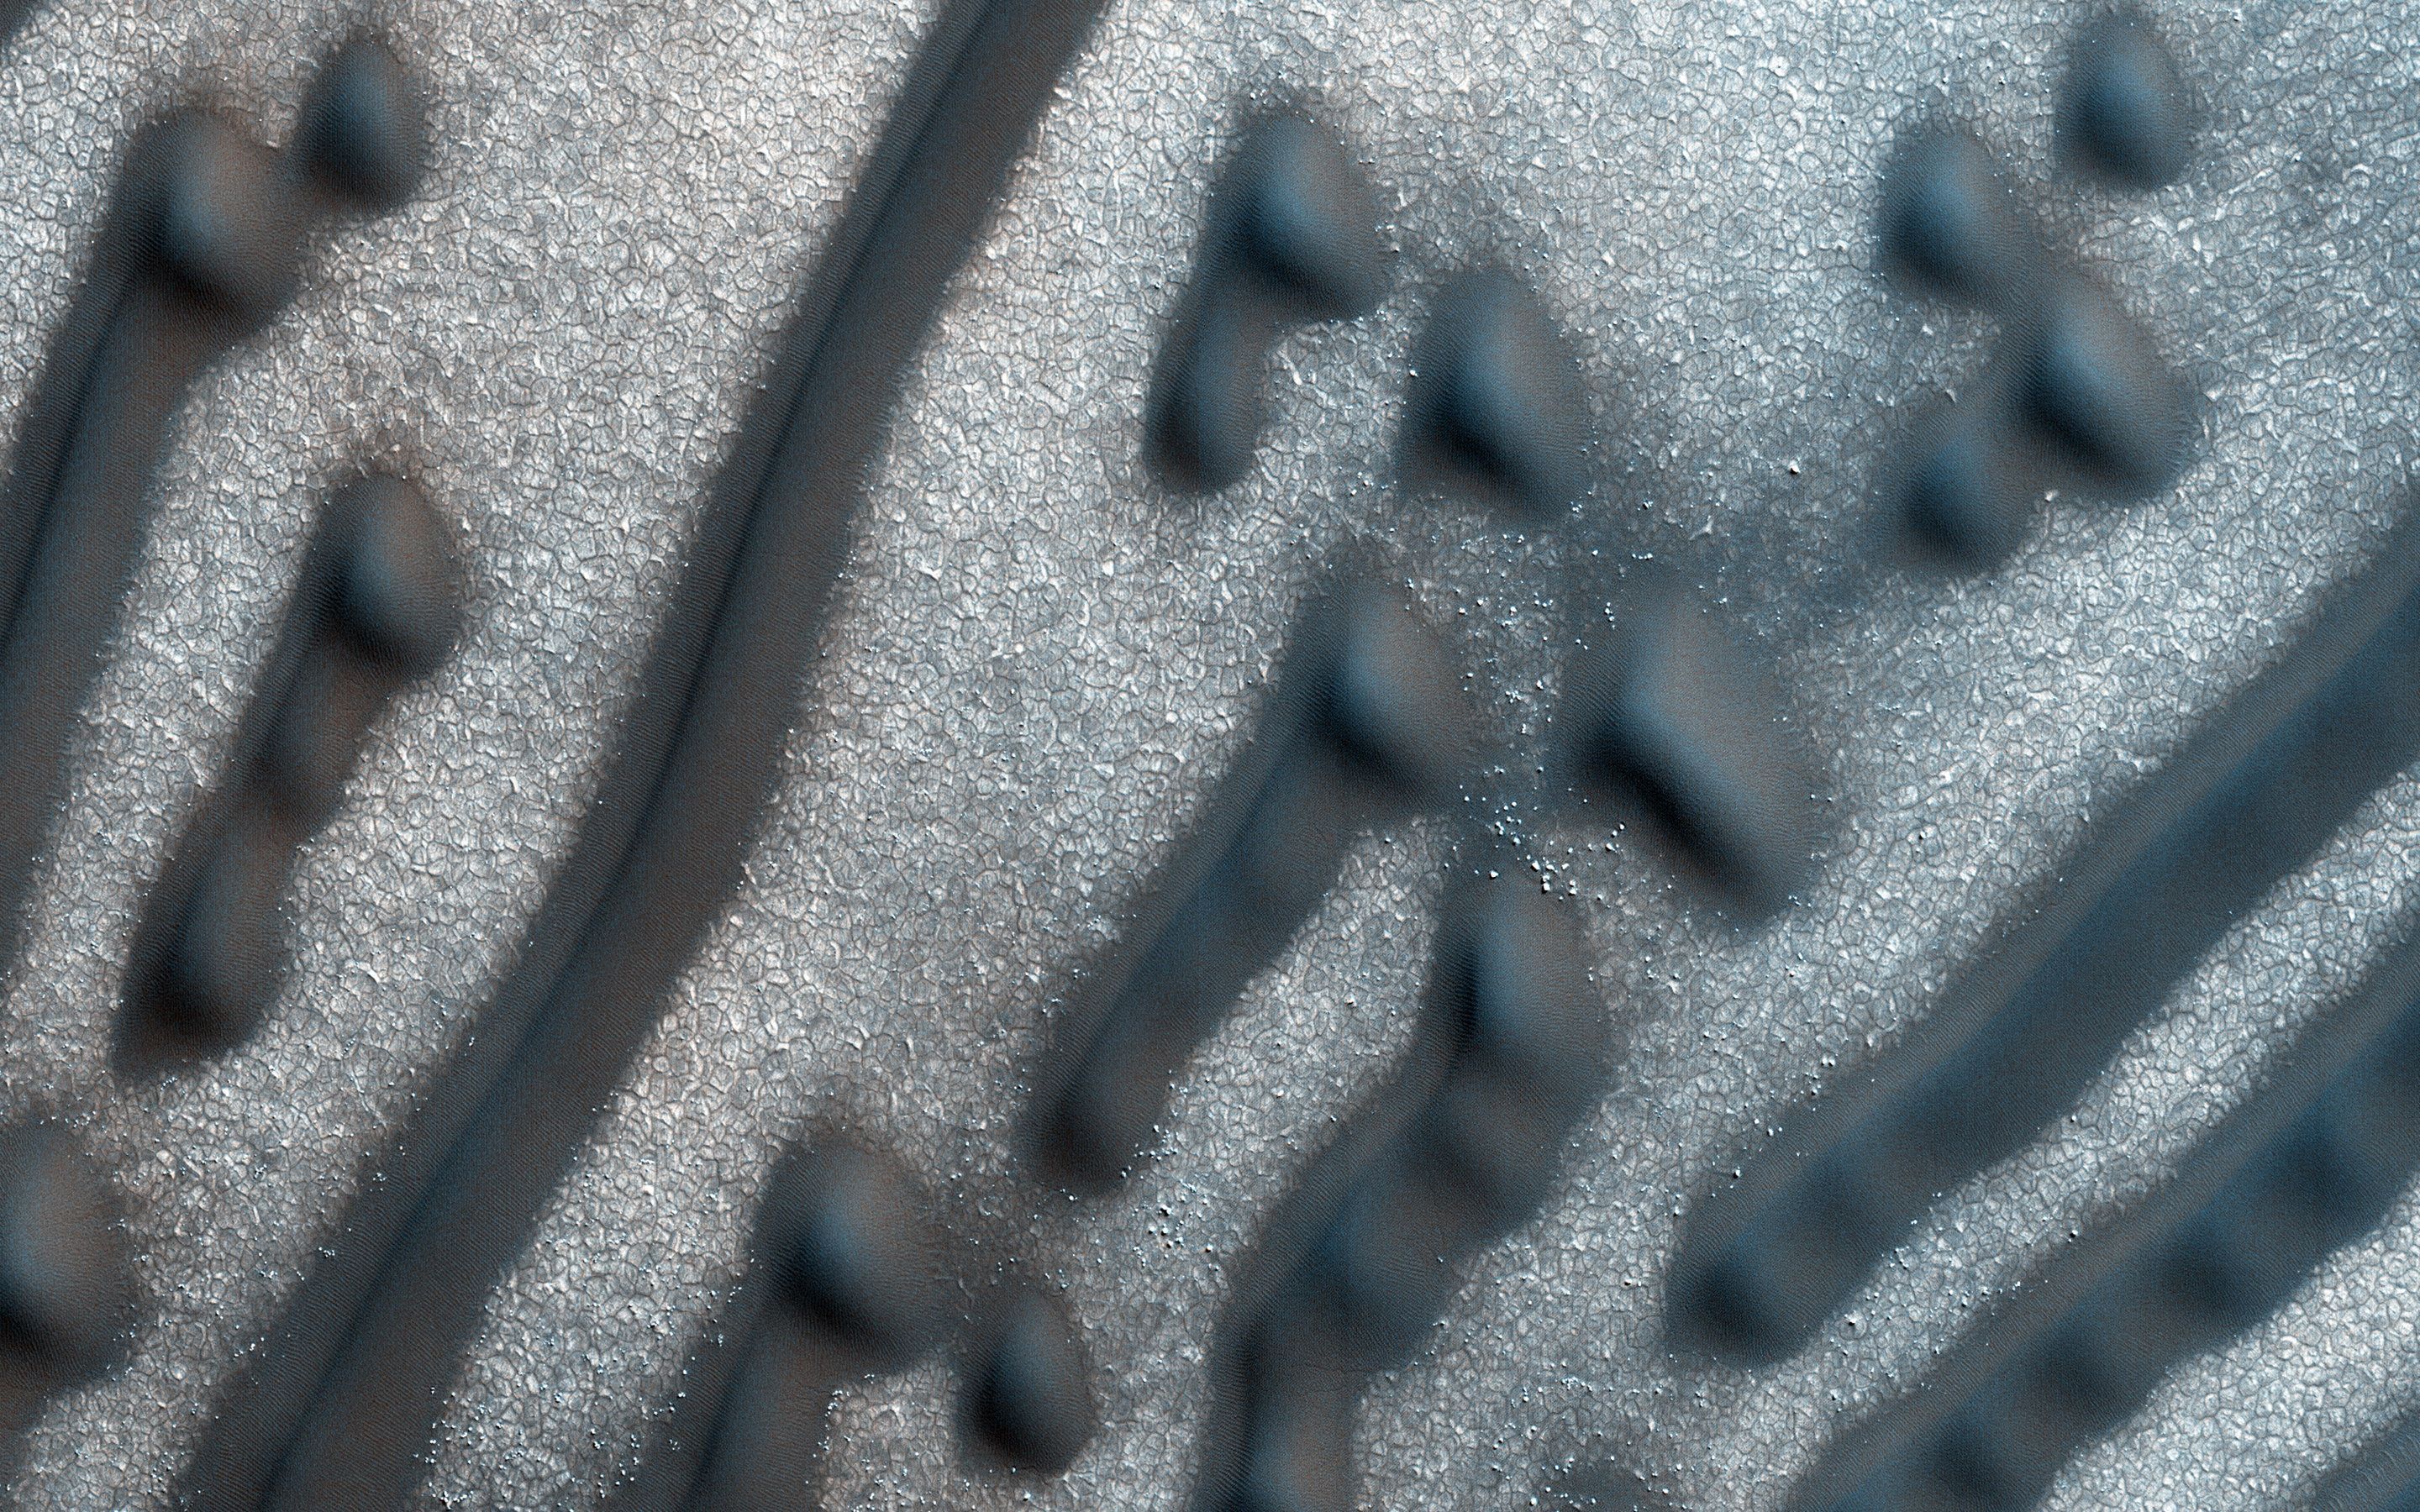 Bizarre Mars Dune Pattern Looks Like A Message In Morse